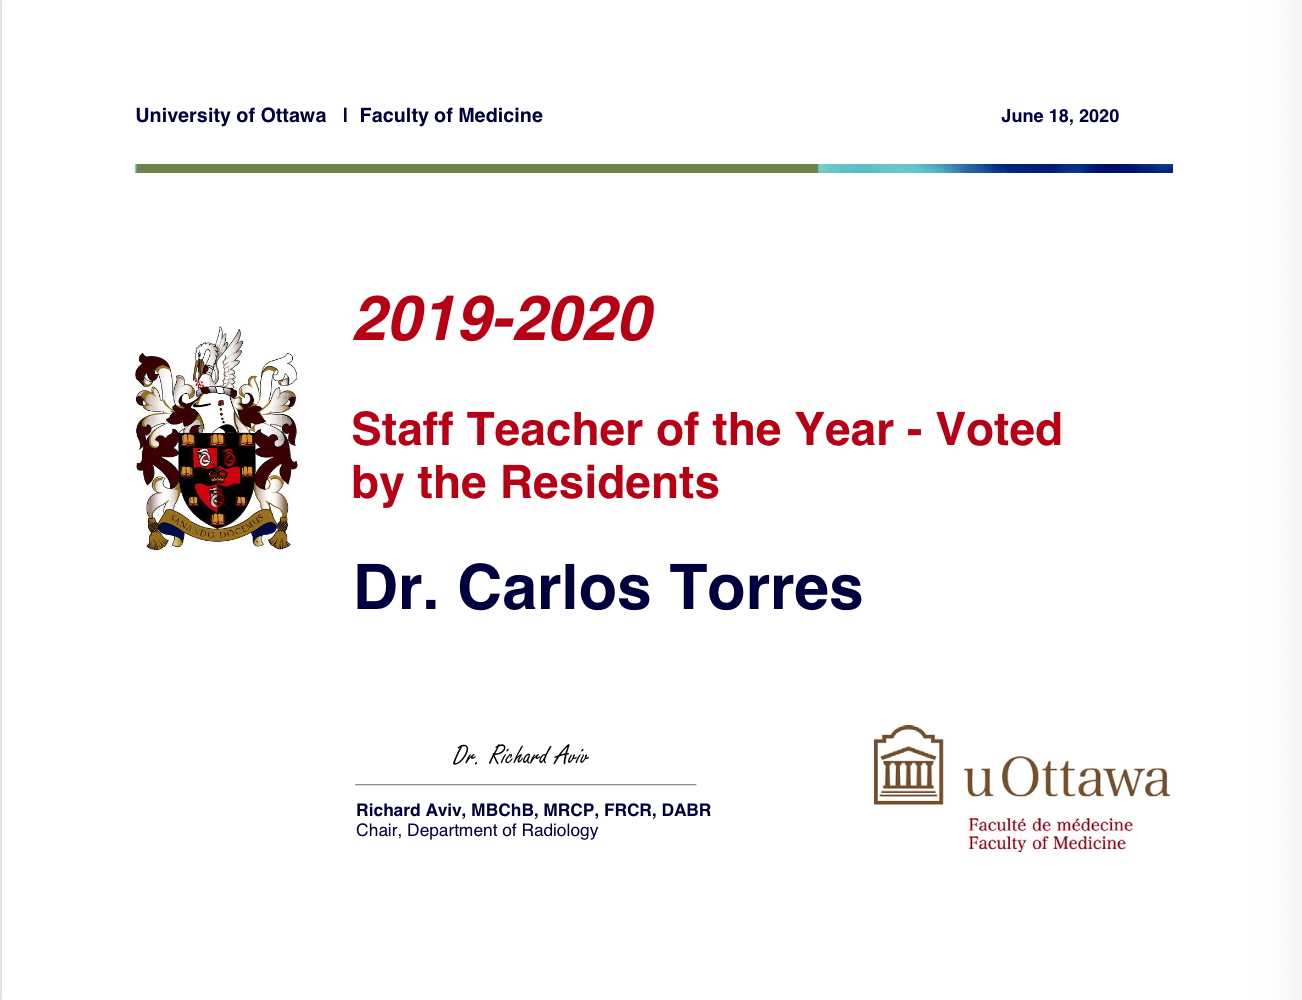 2019-2020 Staff Teacher of the Year - Voted by the Residents. Winner is Dr. Carlos Torres